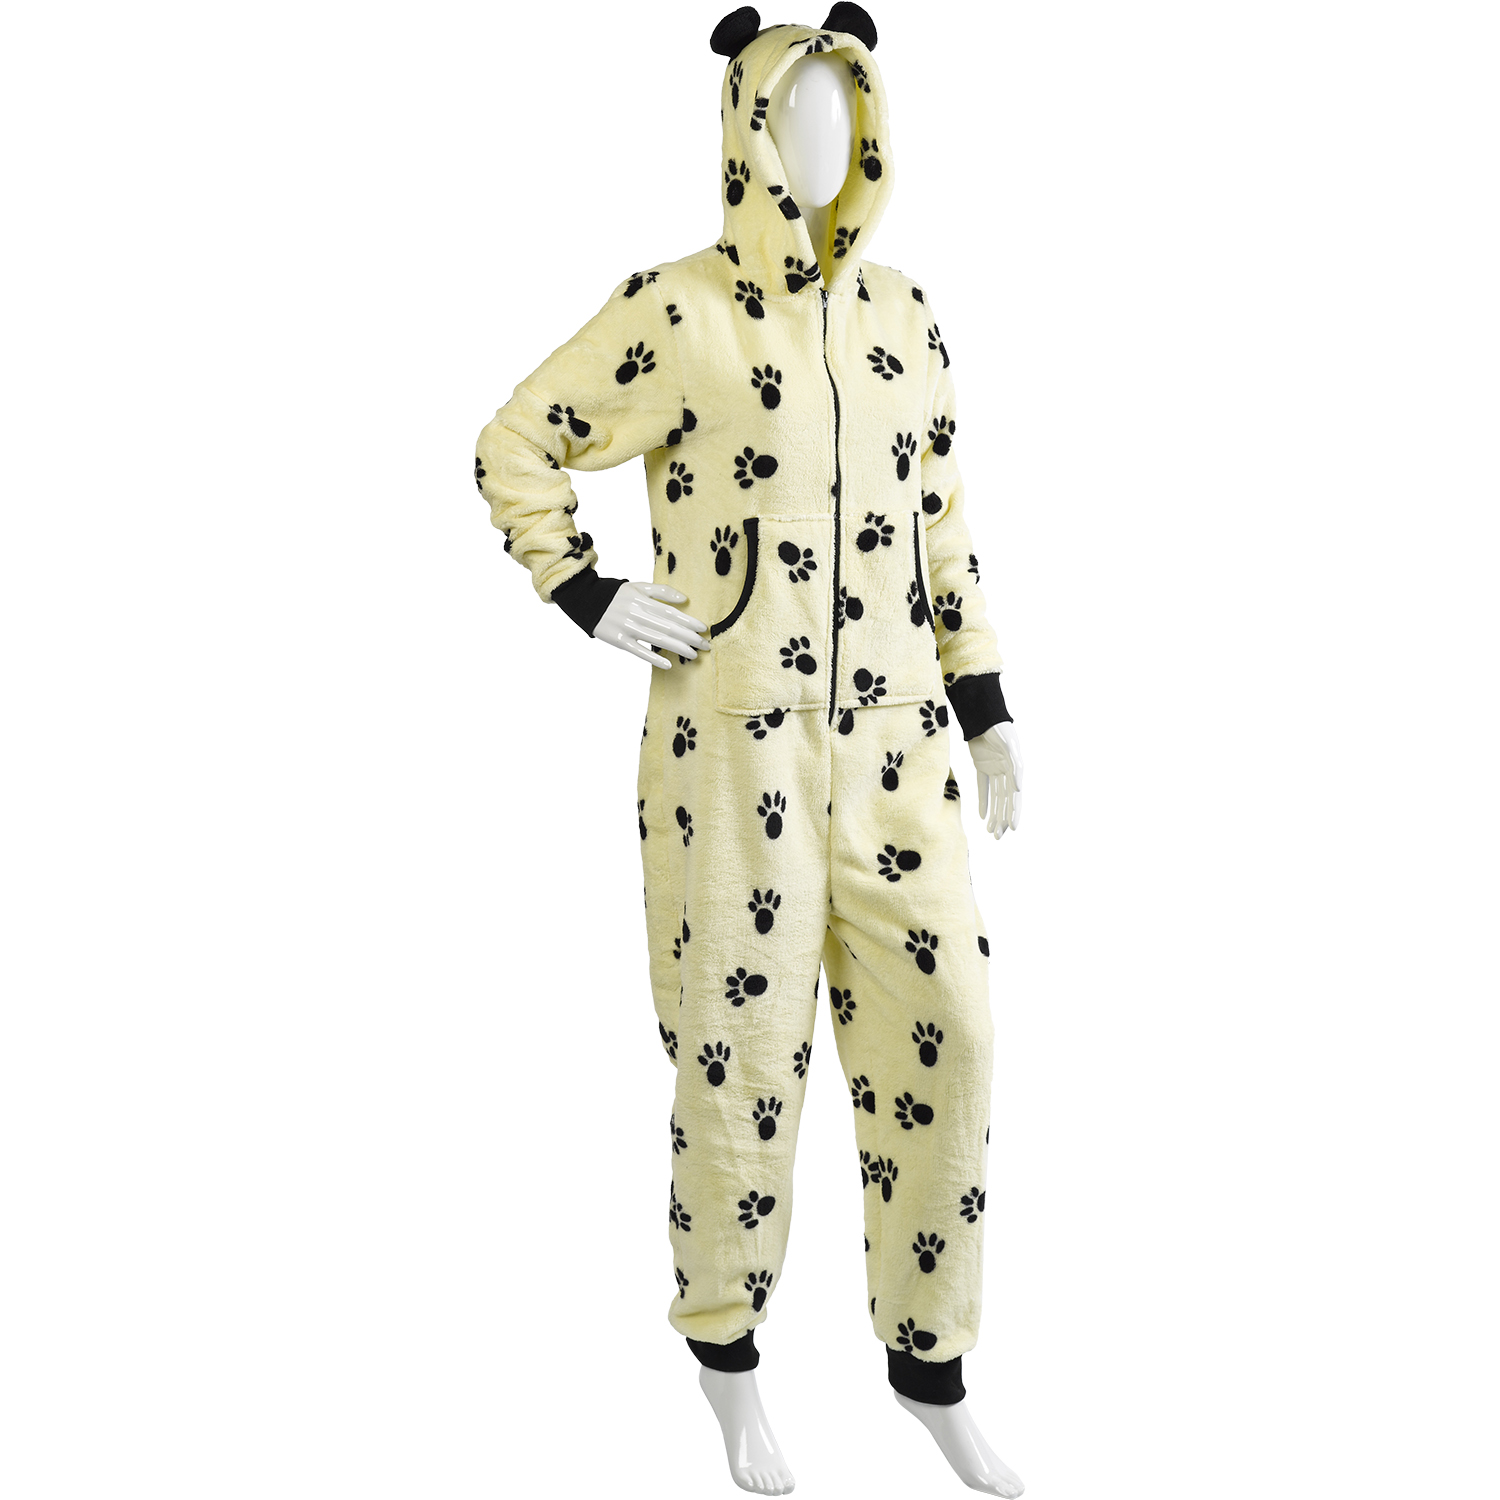 04a126f113 Details about Slenderella Footless Jumpsuit Ladies Soft Fleece Tiger Dog  Paw Print All In One